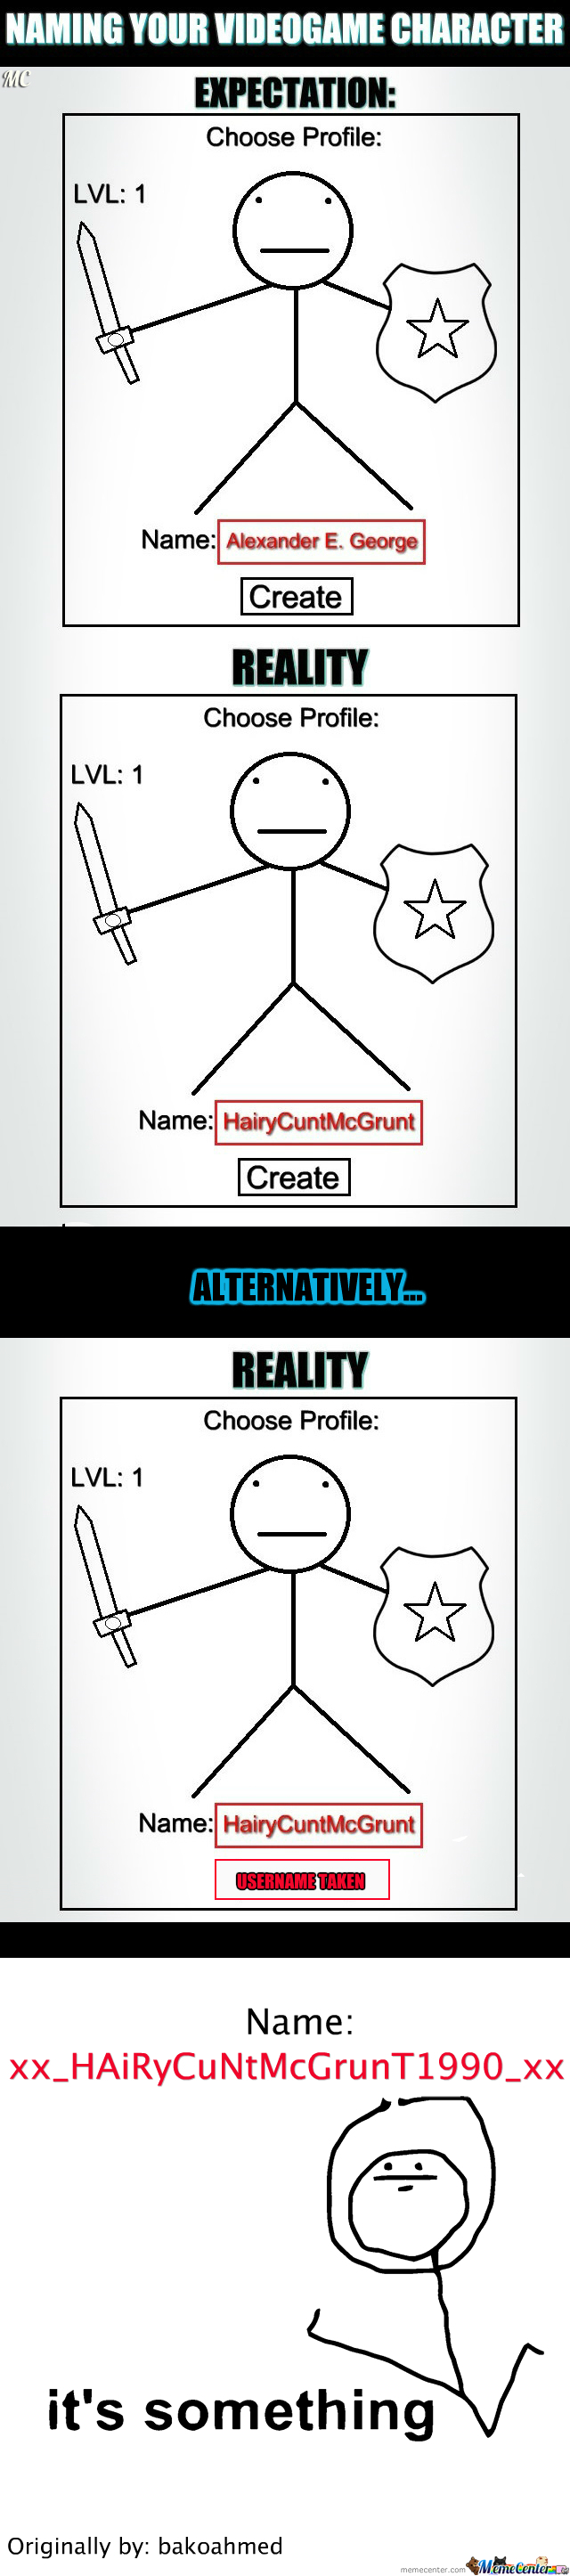 [RMX] Naming Your Videogame Character